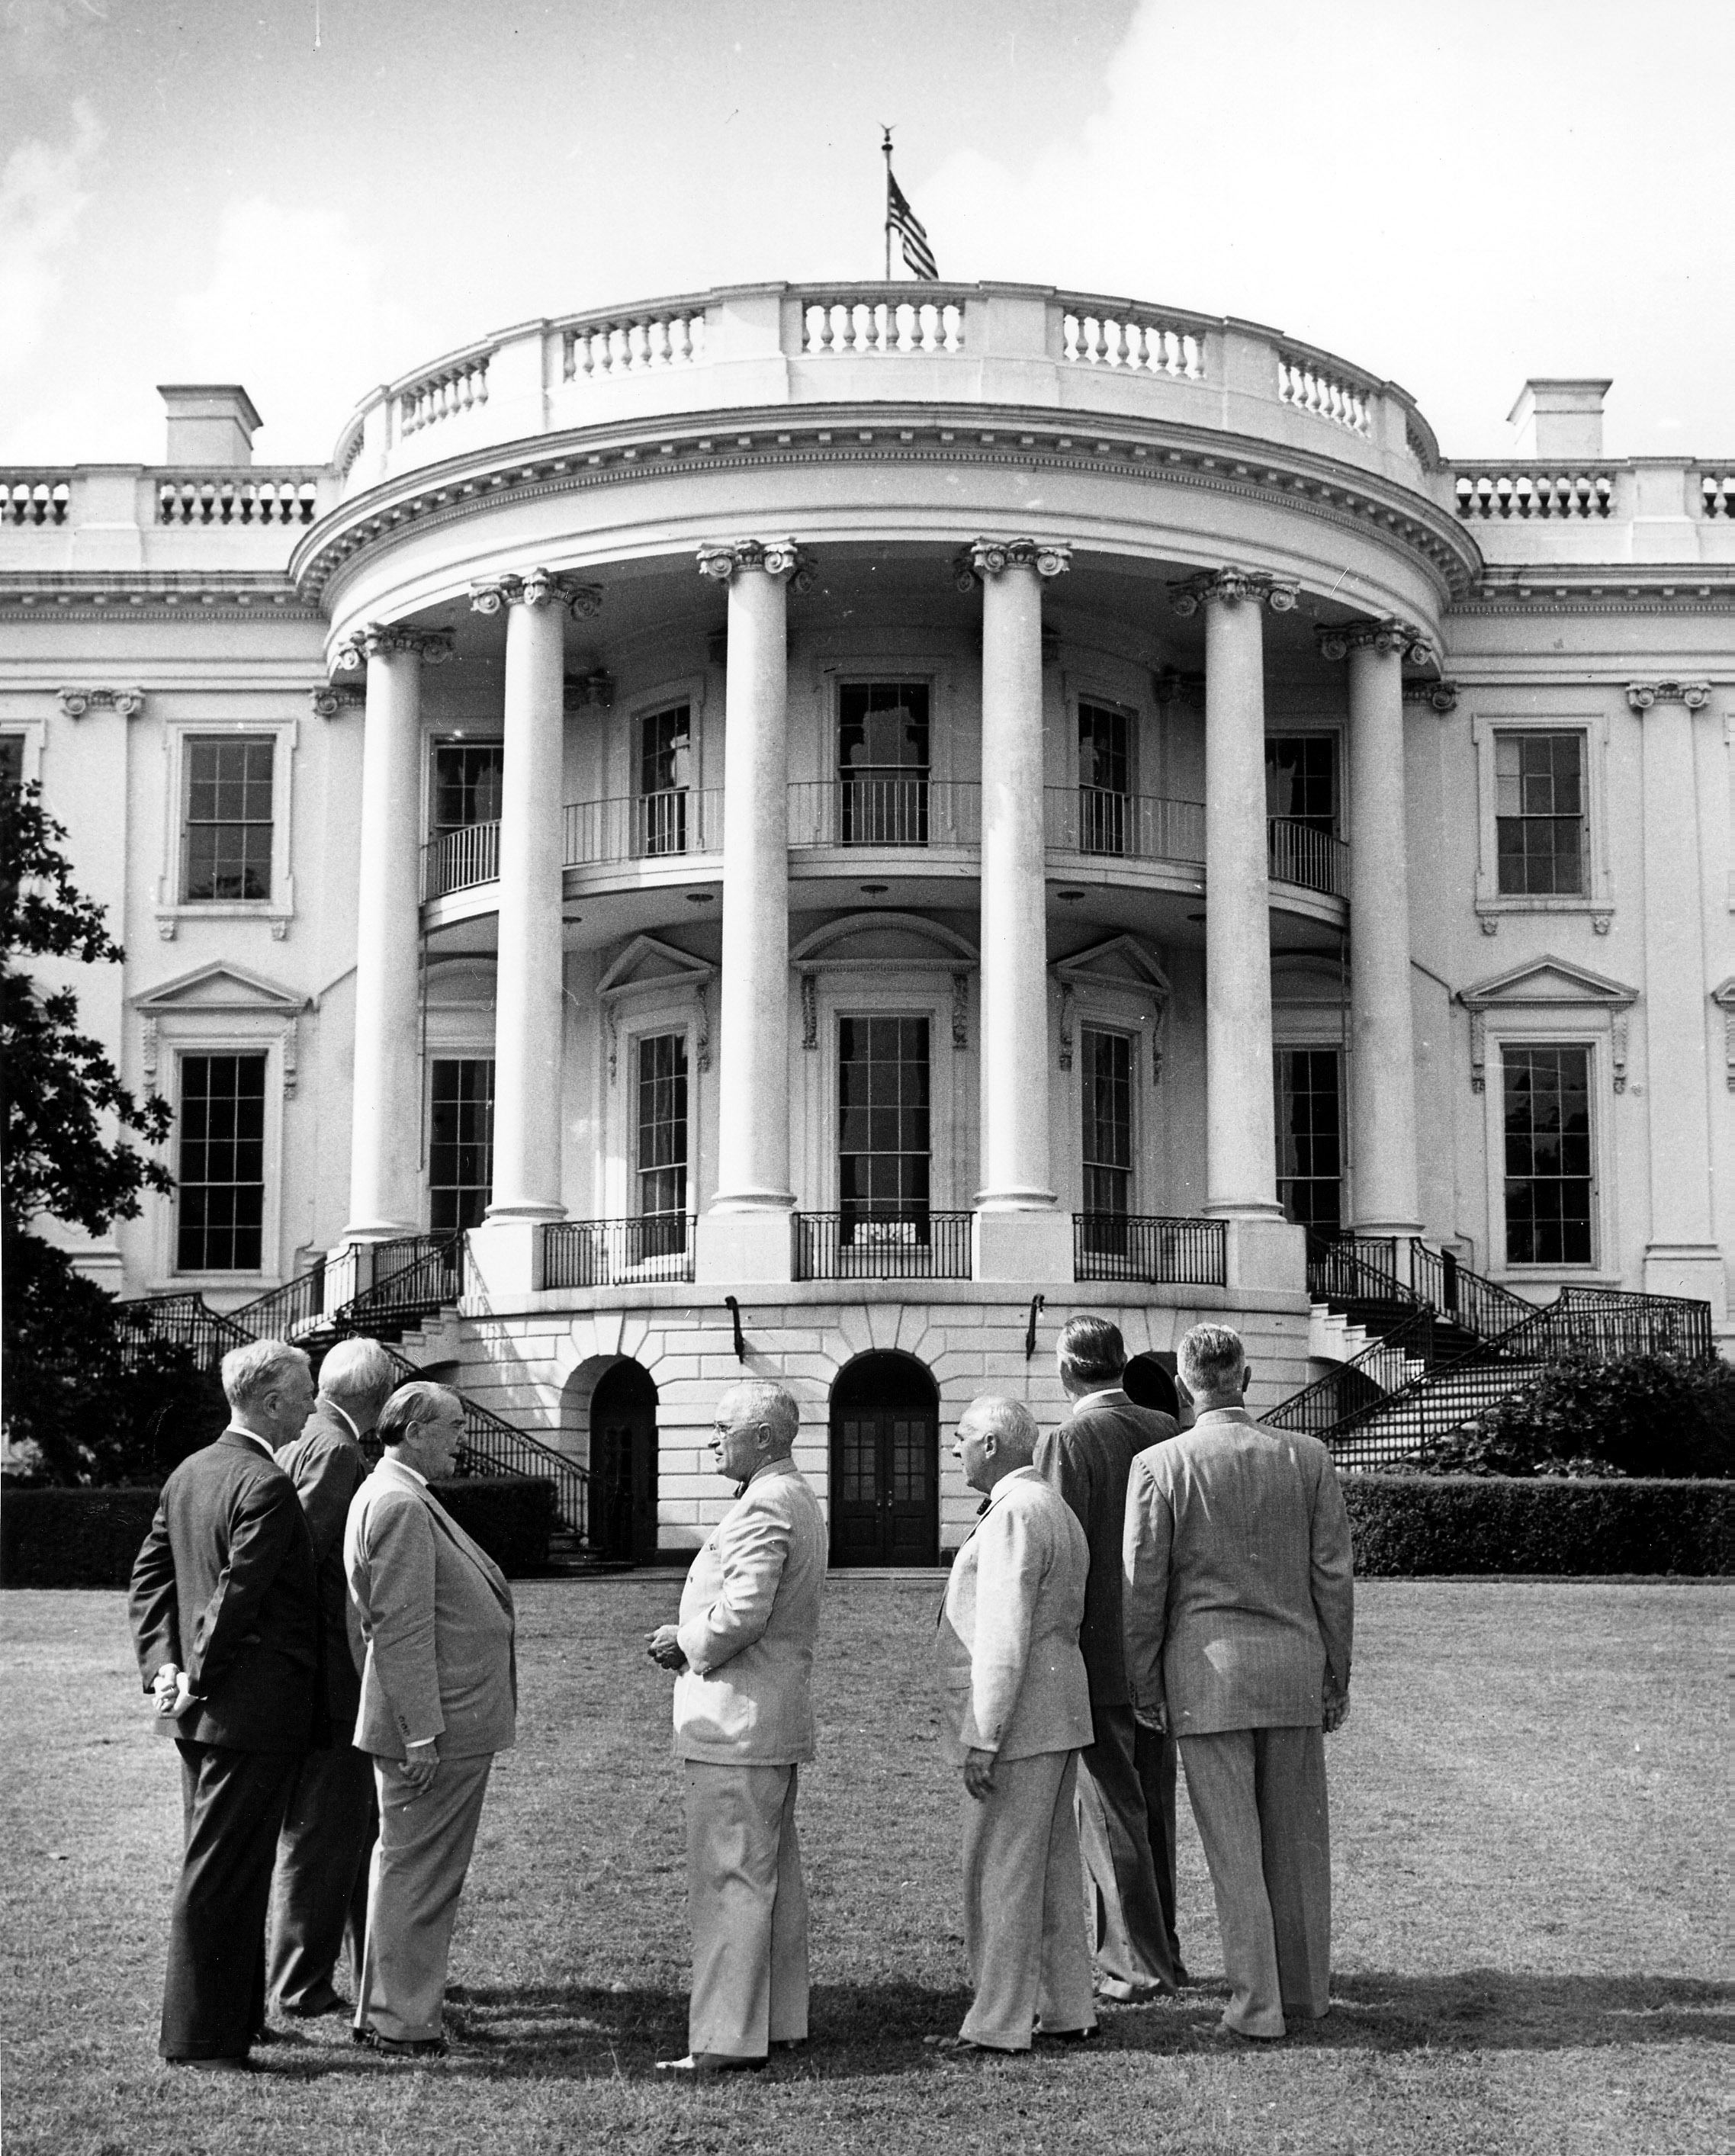 U.S. President Harry S. Truman stands on the lawn of the White House with the Commission on the Renovation of the Executive Mansion on June 20, 1949. From left to right: Senator Edward Martin; Senator Kenneth McKellar; Richard E. Dougherty; President Truman; Douglas Orr, American Institute of Architects; Representative Louis C. Rabaut; Representative Frank B. Keefe. Photo from he holdings of the National Archives and Records Administration, cataloged under the National Archives Identifier (NAID) 6982040.